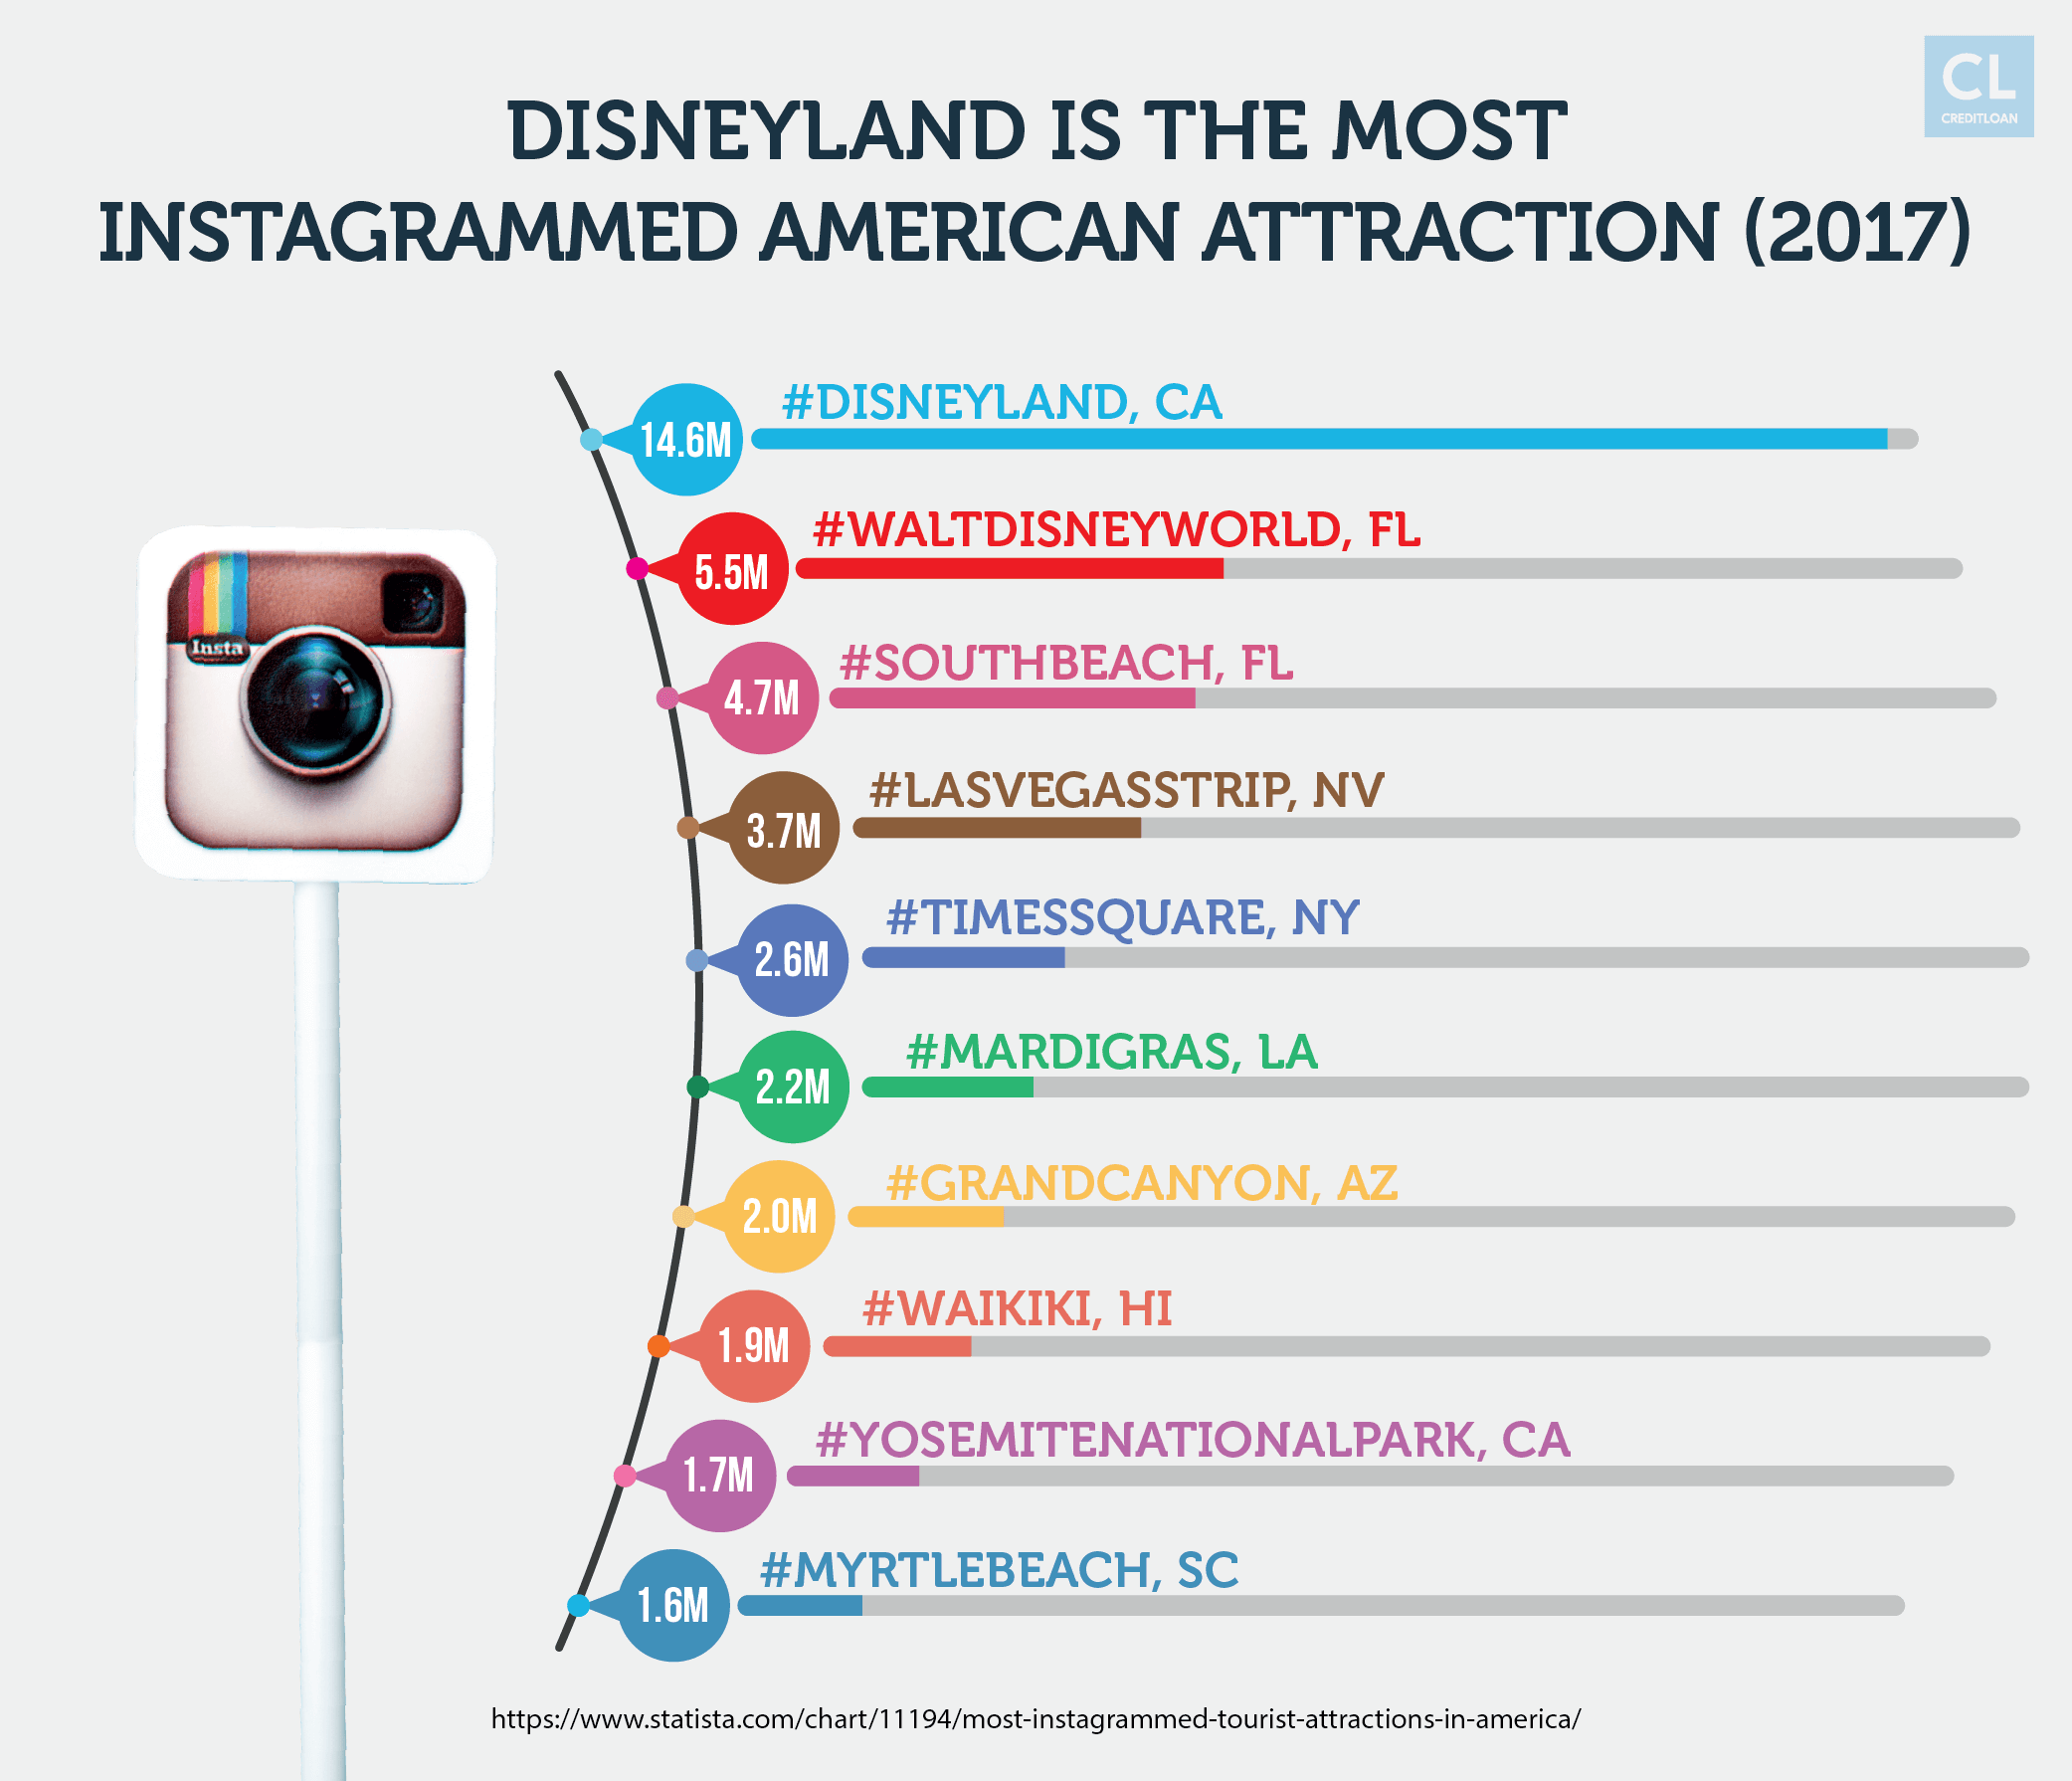 Disneyland is the Most Instagrammed American Attractions 2017